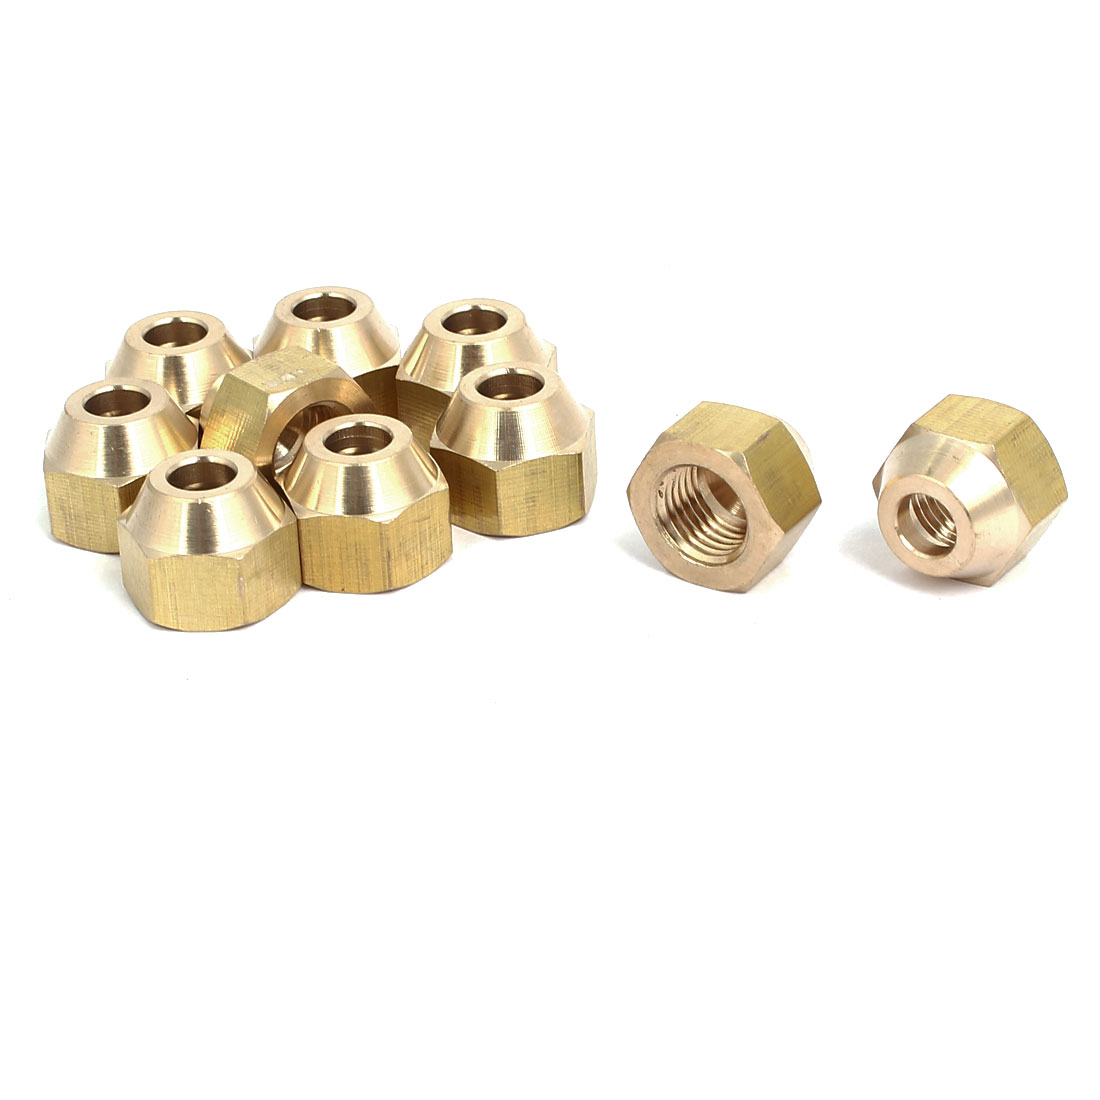 1/4BSP Brass Flare Nuts Air Conditioner Parts Fittings 10pcs for 6mm Dia Pipe